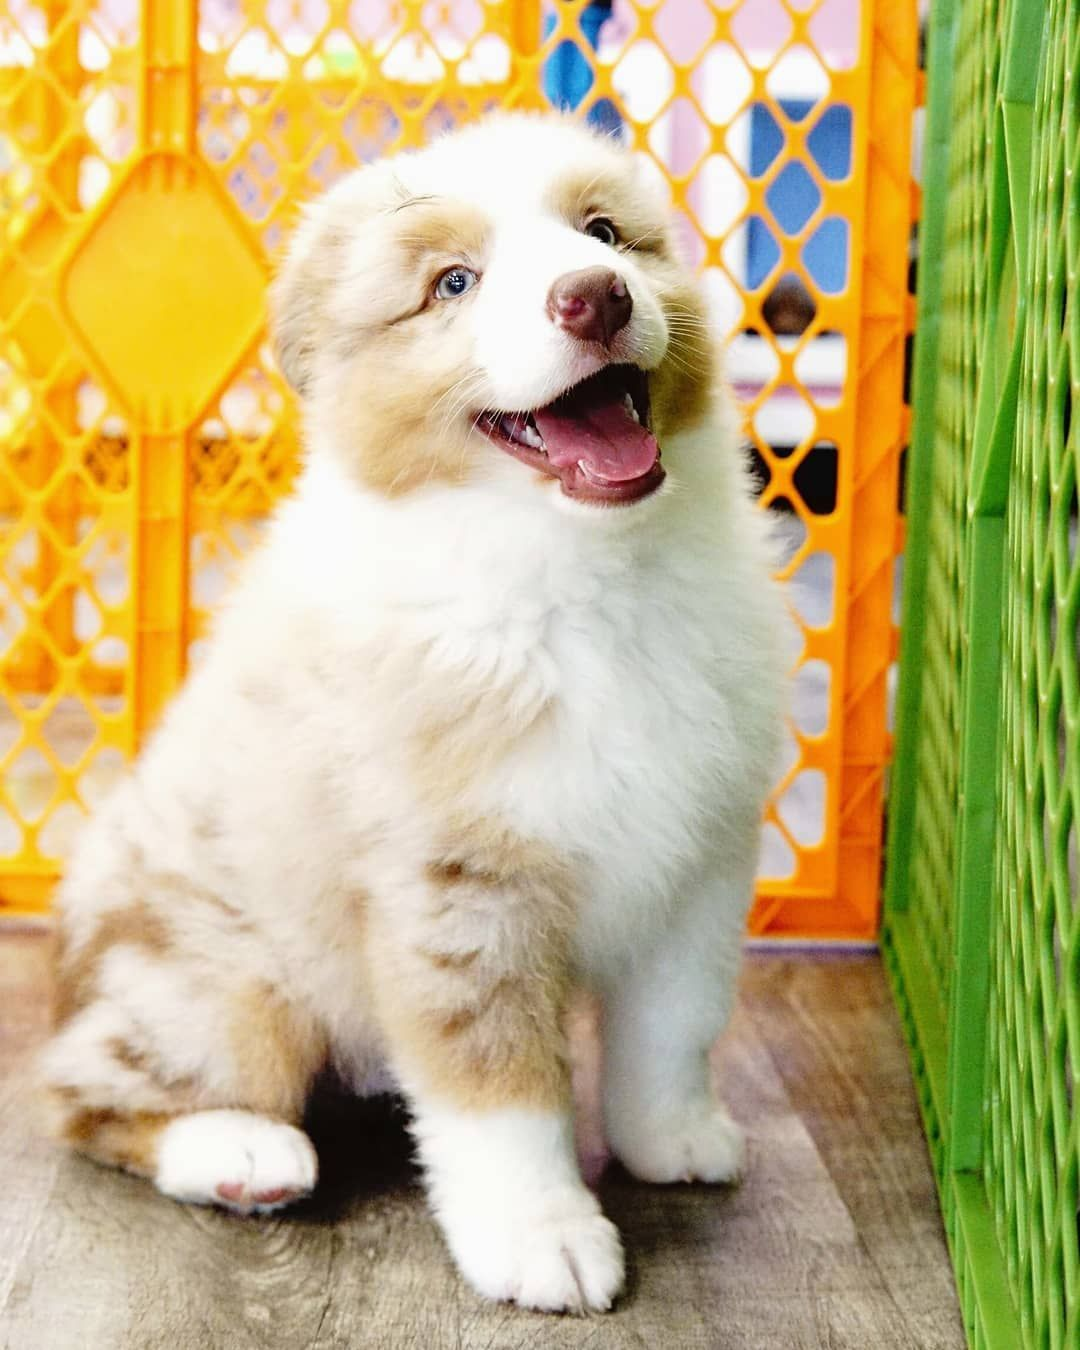 Have You Been To Forever Love Puppies We Have The Largest Selection Of Puppies In South Florida And You Can Play With As In 2020 Puppies Puppies For Sale Forever Love